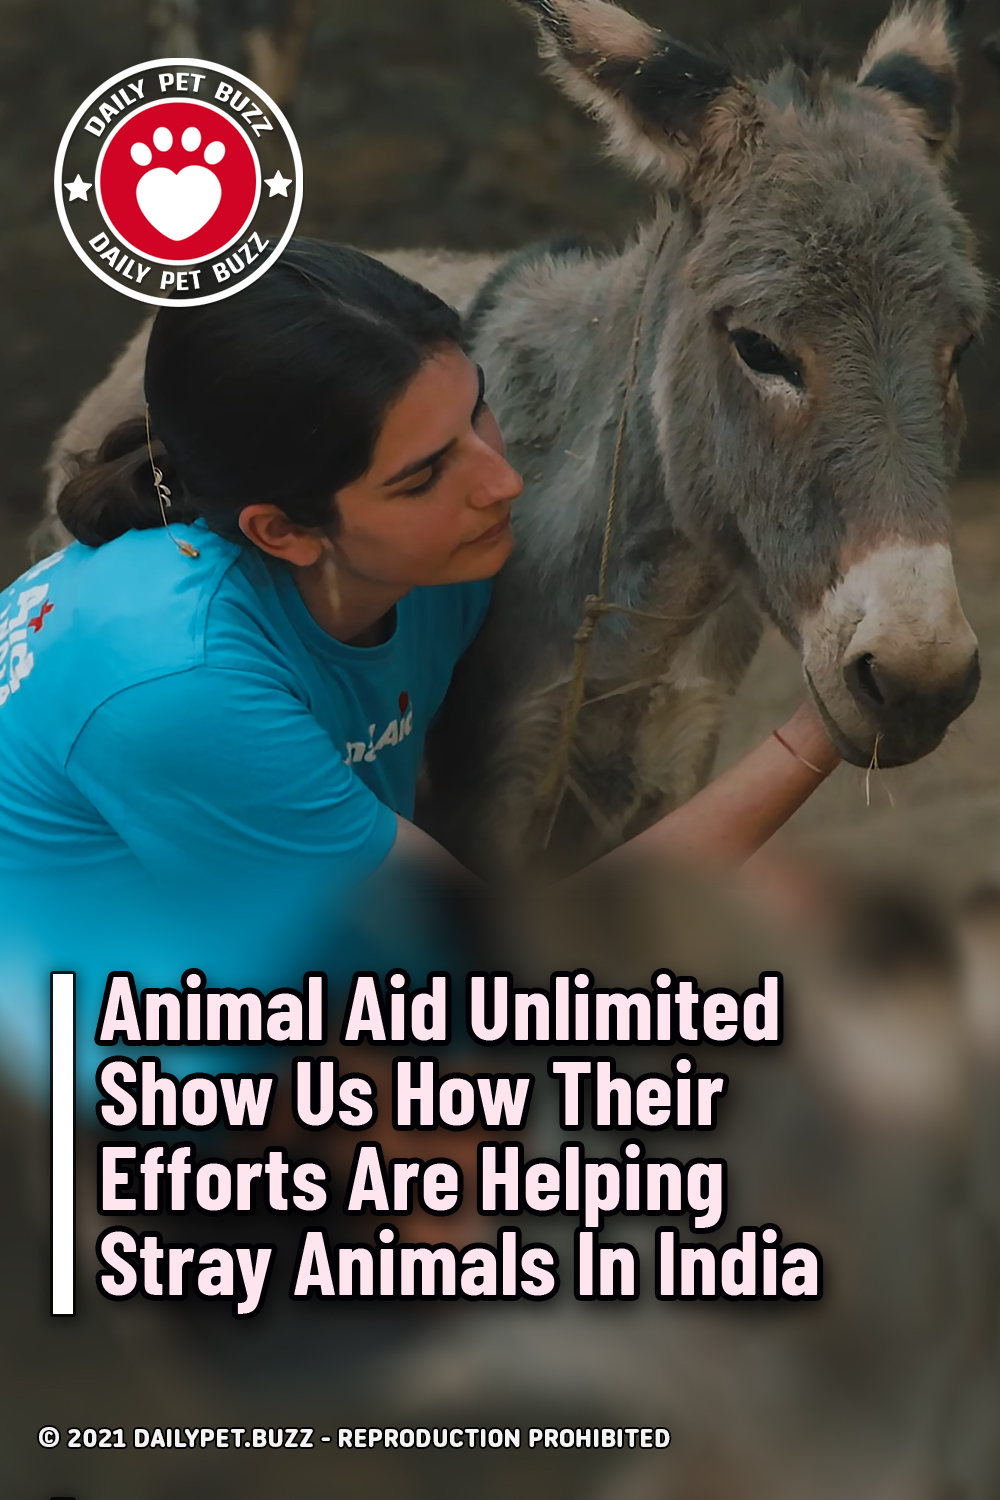 Animal Aid Unlimited Show Us How Their Efforts Are Helping Stray Animals In India